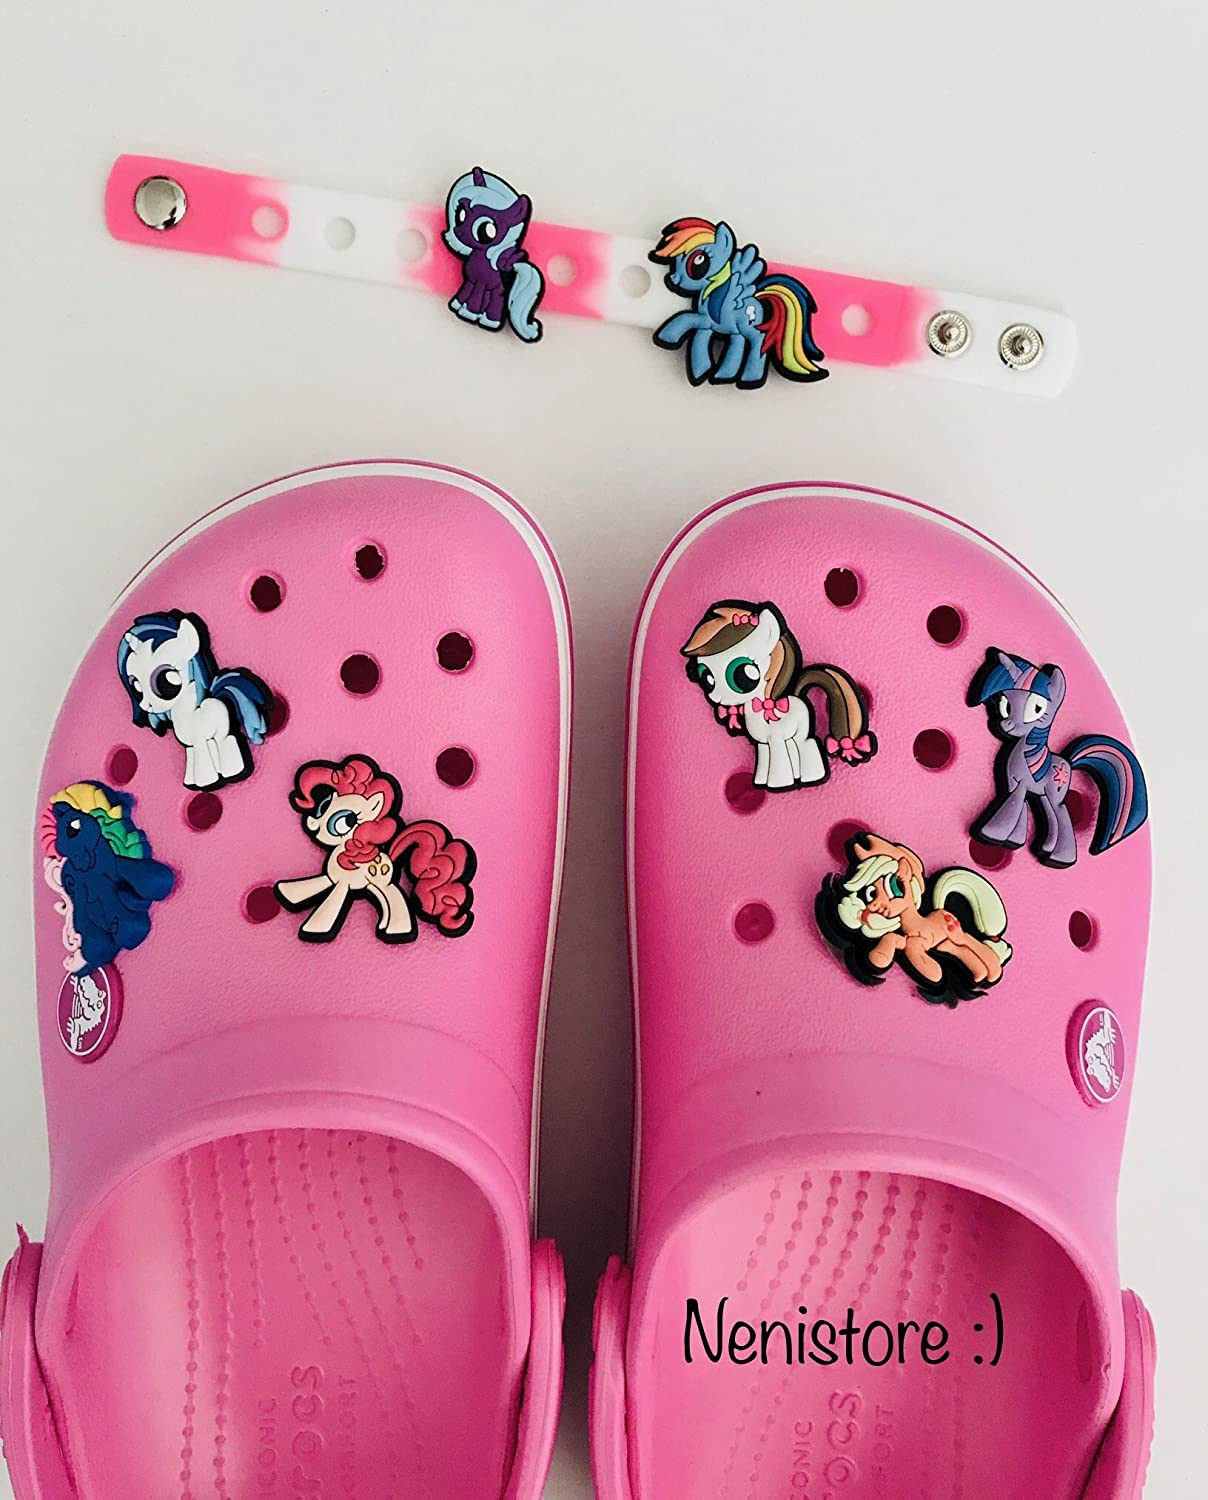 Jibbitz Charms Plug Accessories for Crocs /& Bracelet Wristband Party Gifts Cute Shoe Charms for Crocs Shoes by Nenistore